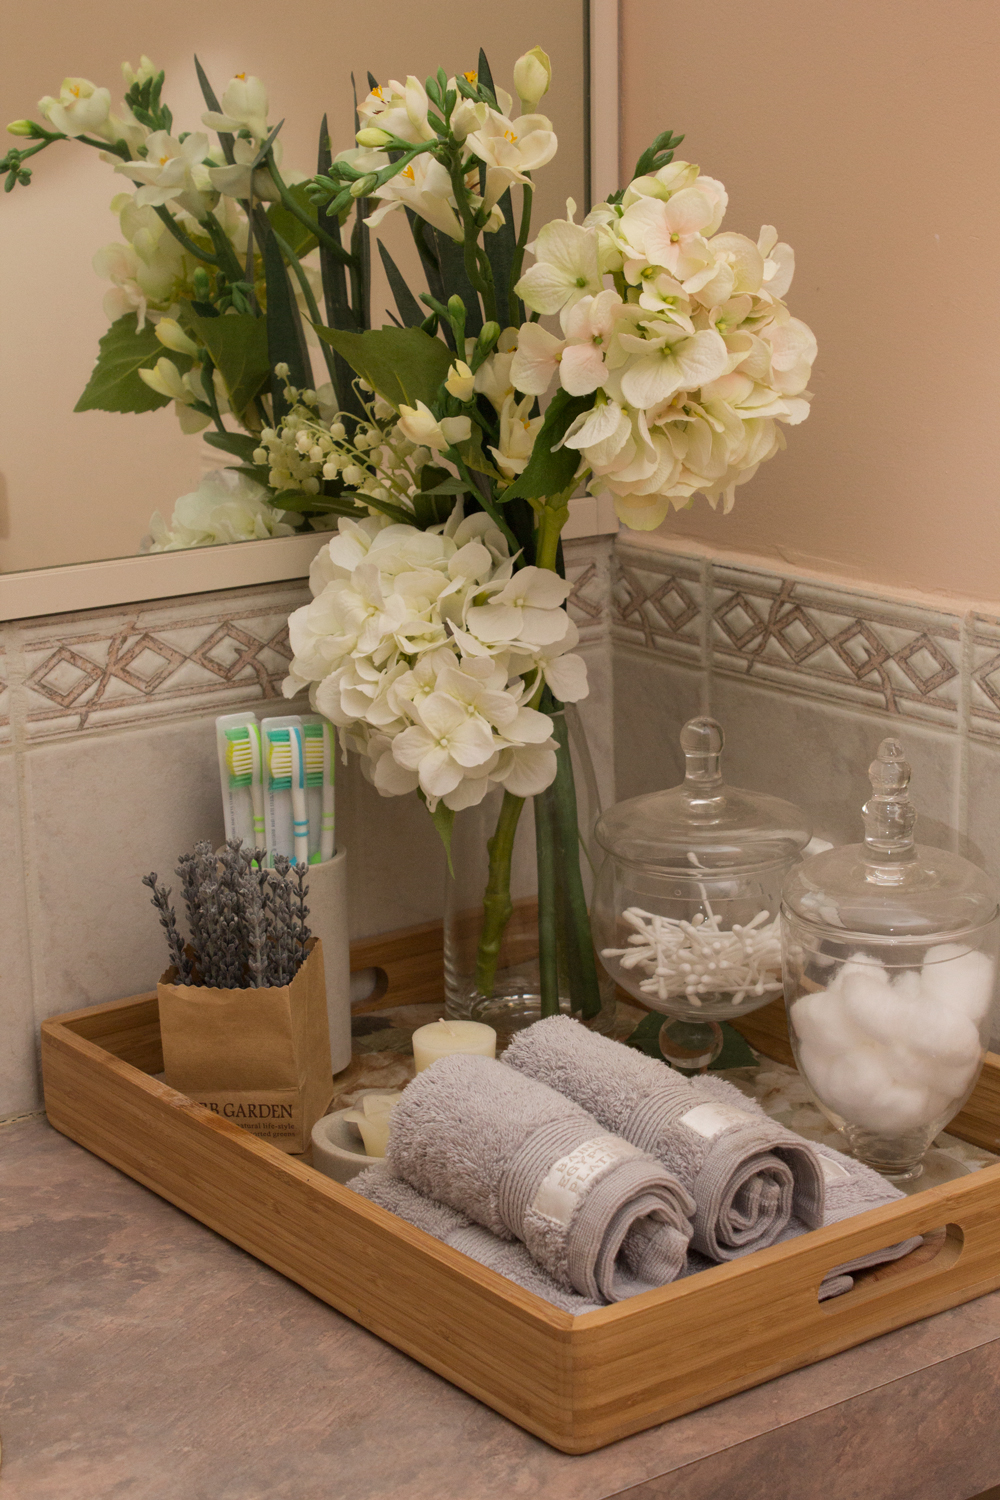 Bathroom Countertop Storage Solutions With Aesthetic Charm on Counter Top Decor  id=80285